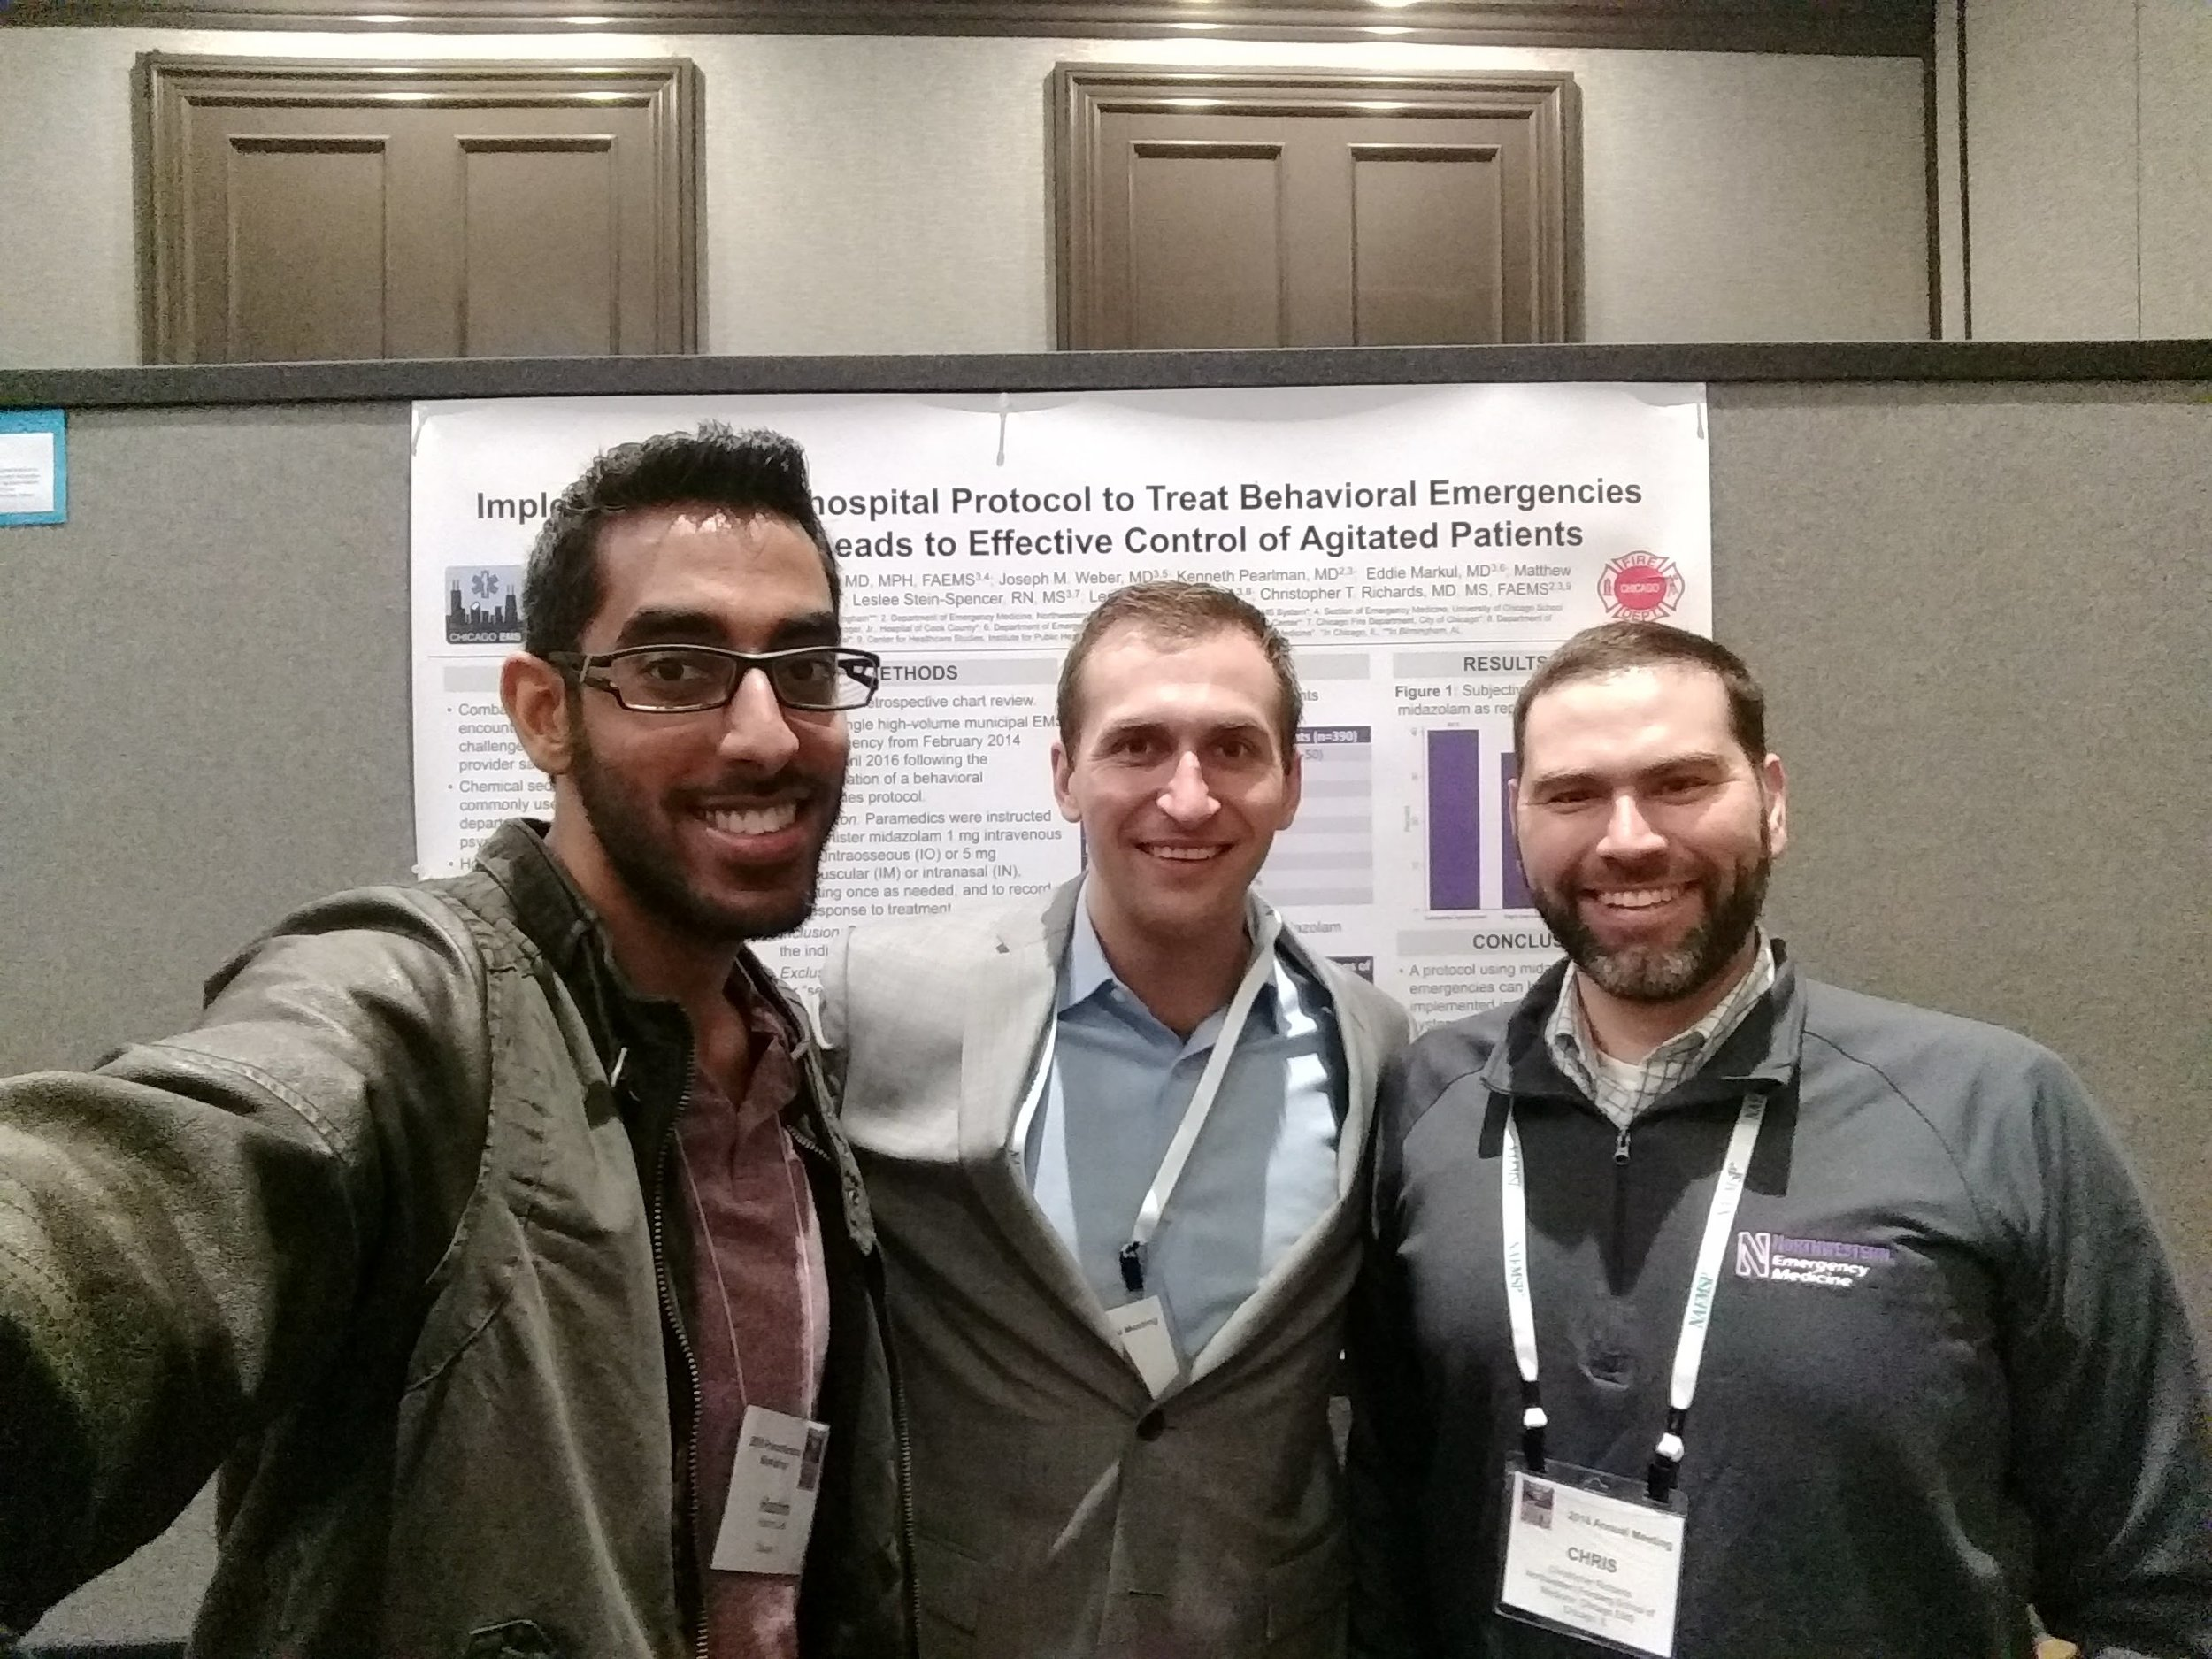 PGY3 Hashim Zaidi, MD with NUEM Alum Ryan Huebinger, MD (c/o 2017) and NUEM faculty member Chris Richards, MD, MS at NAEMSP 2018.